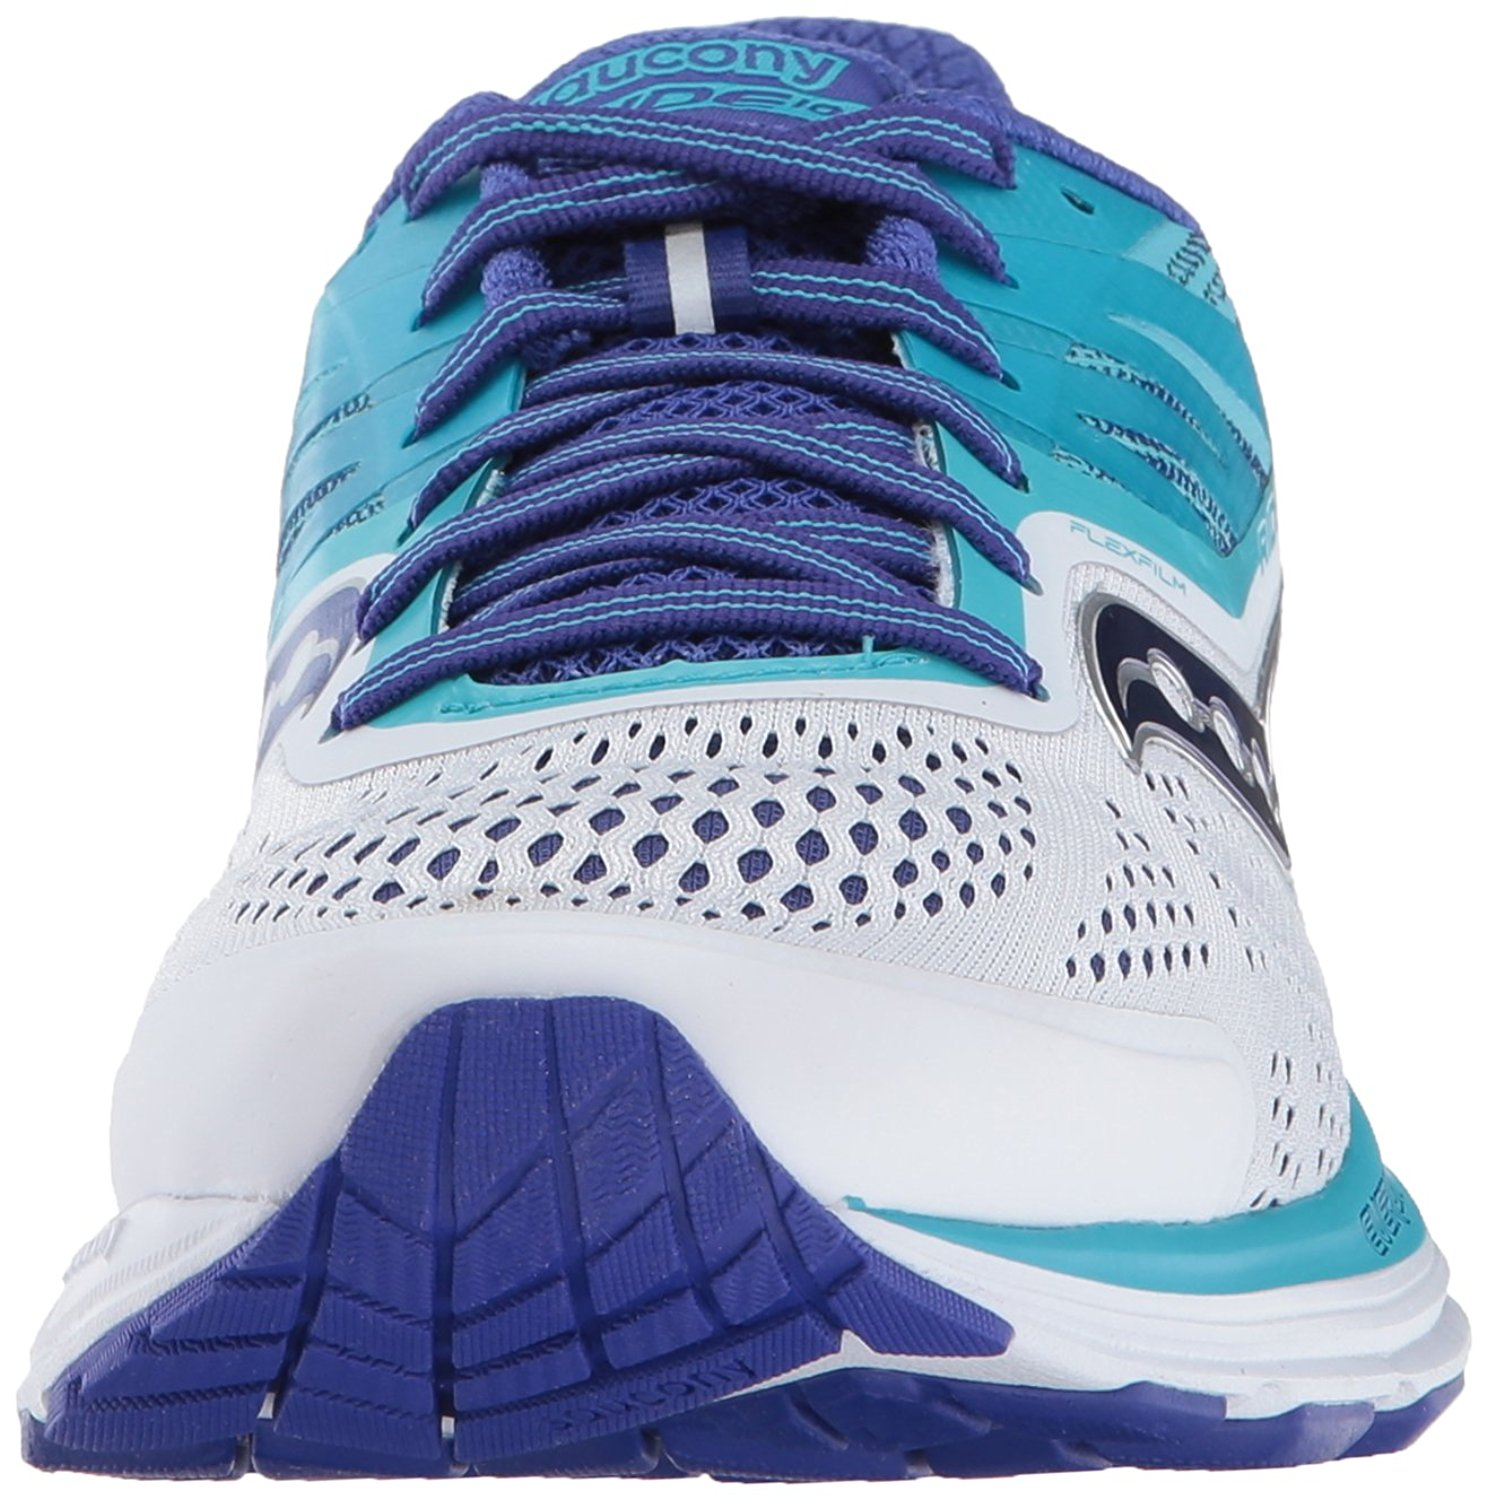 White Blue 7 B US Saucony Women/'s Ride 10 Running Shoe